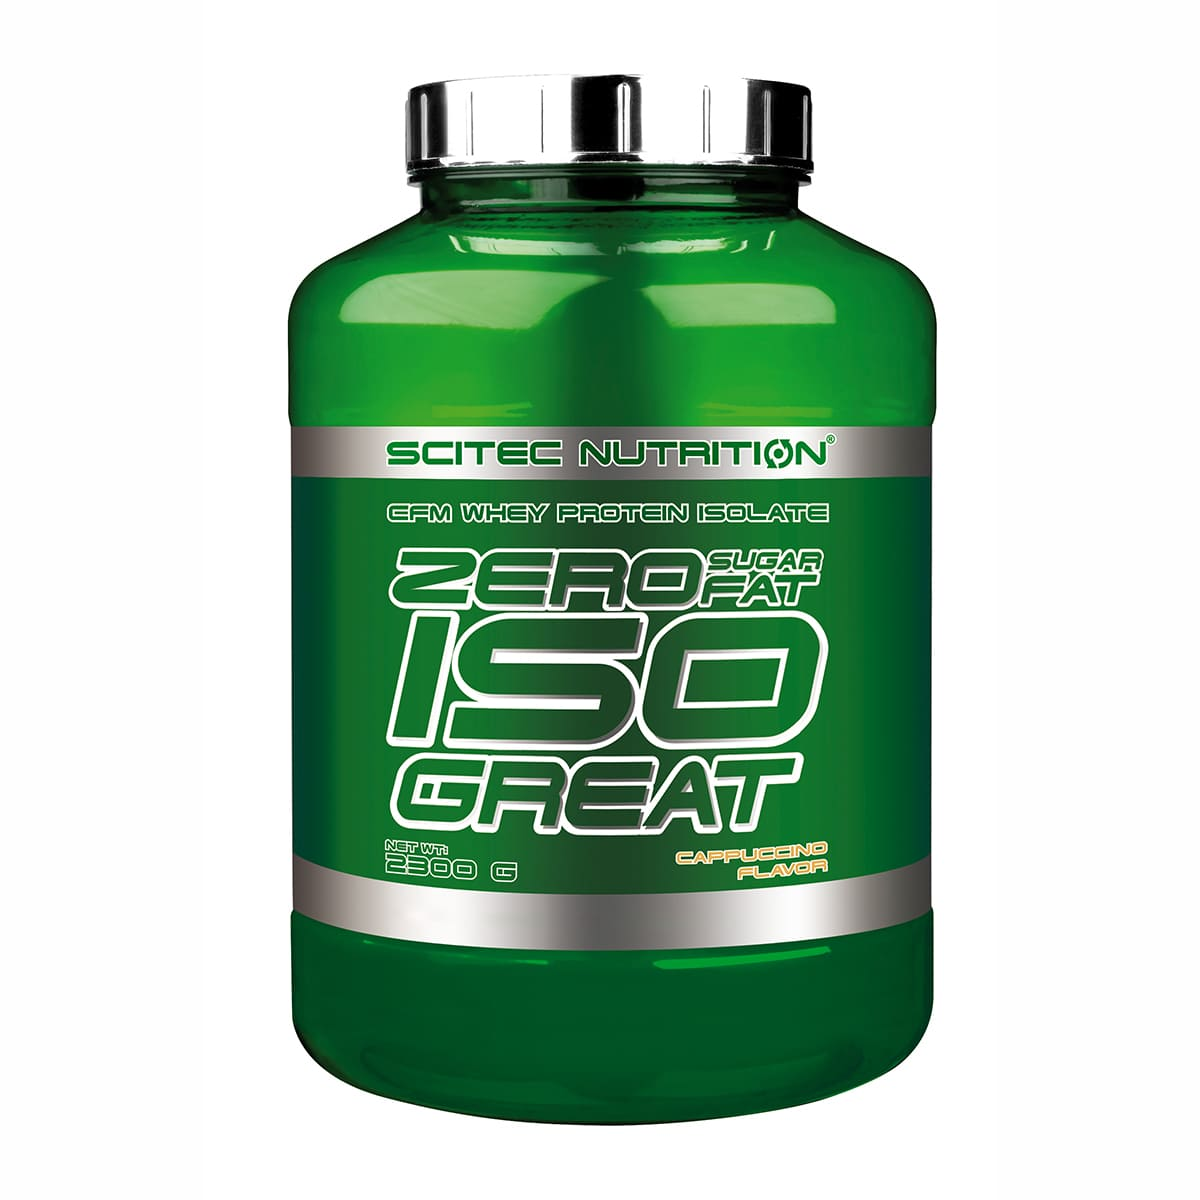 Zero Sugar Fat Isogreat, 2300g